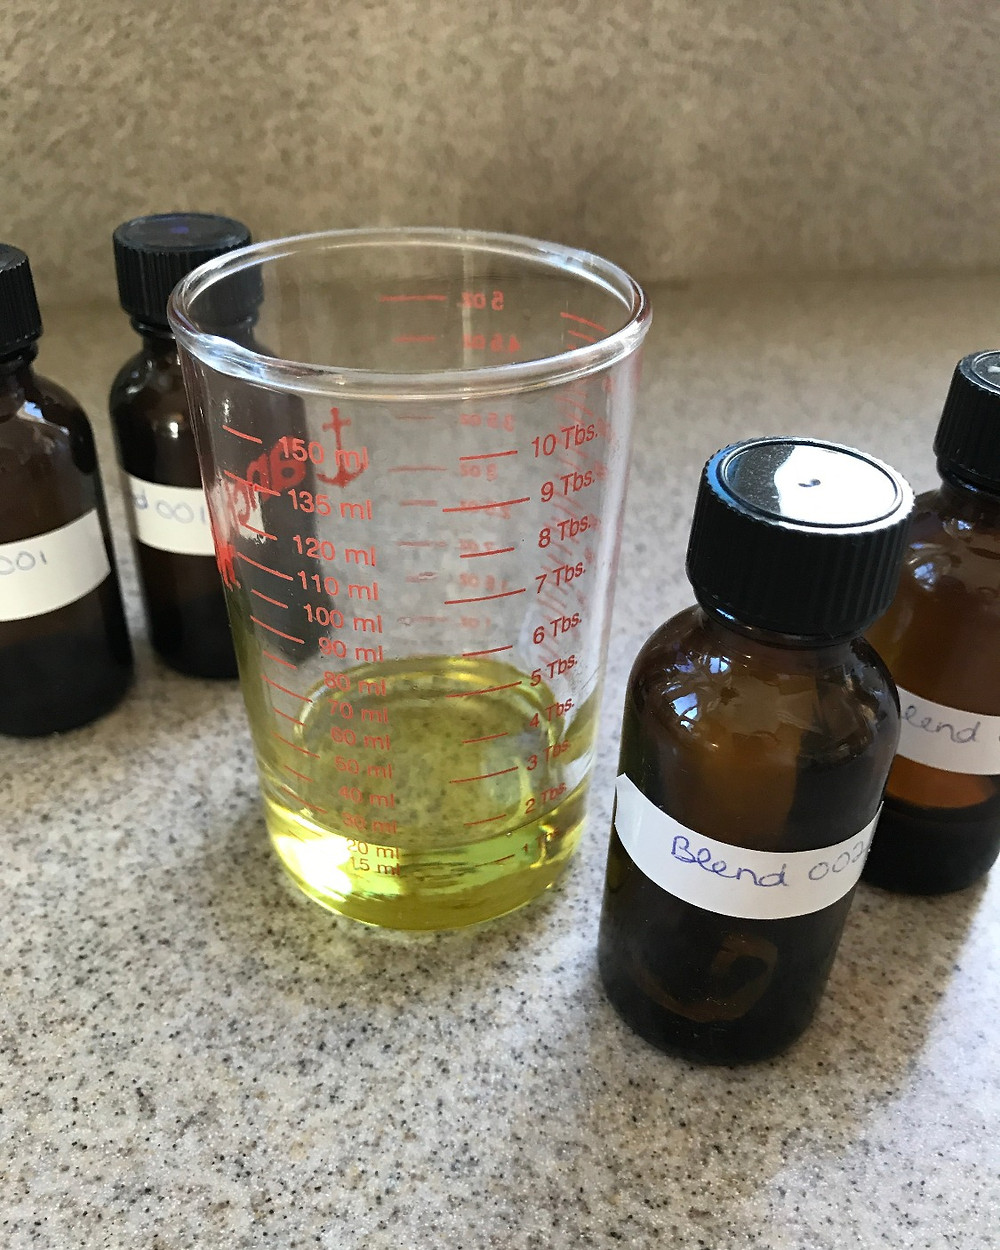 Researching essential oil blends